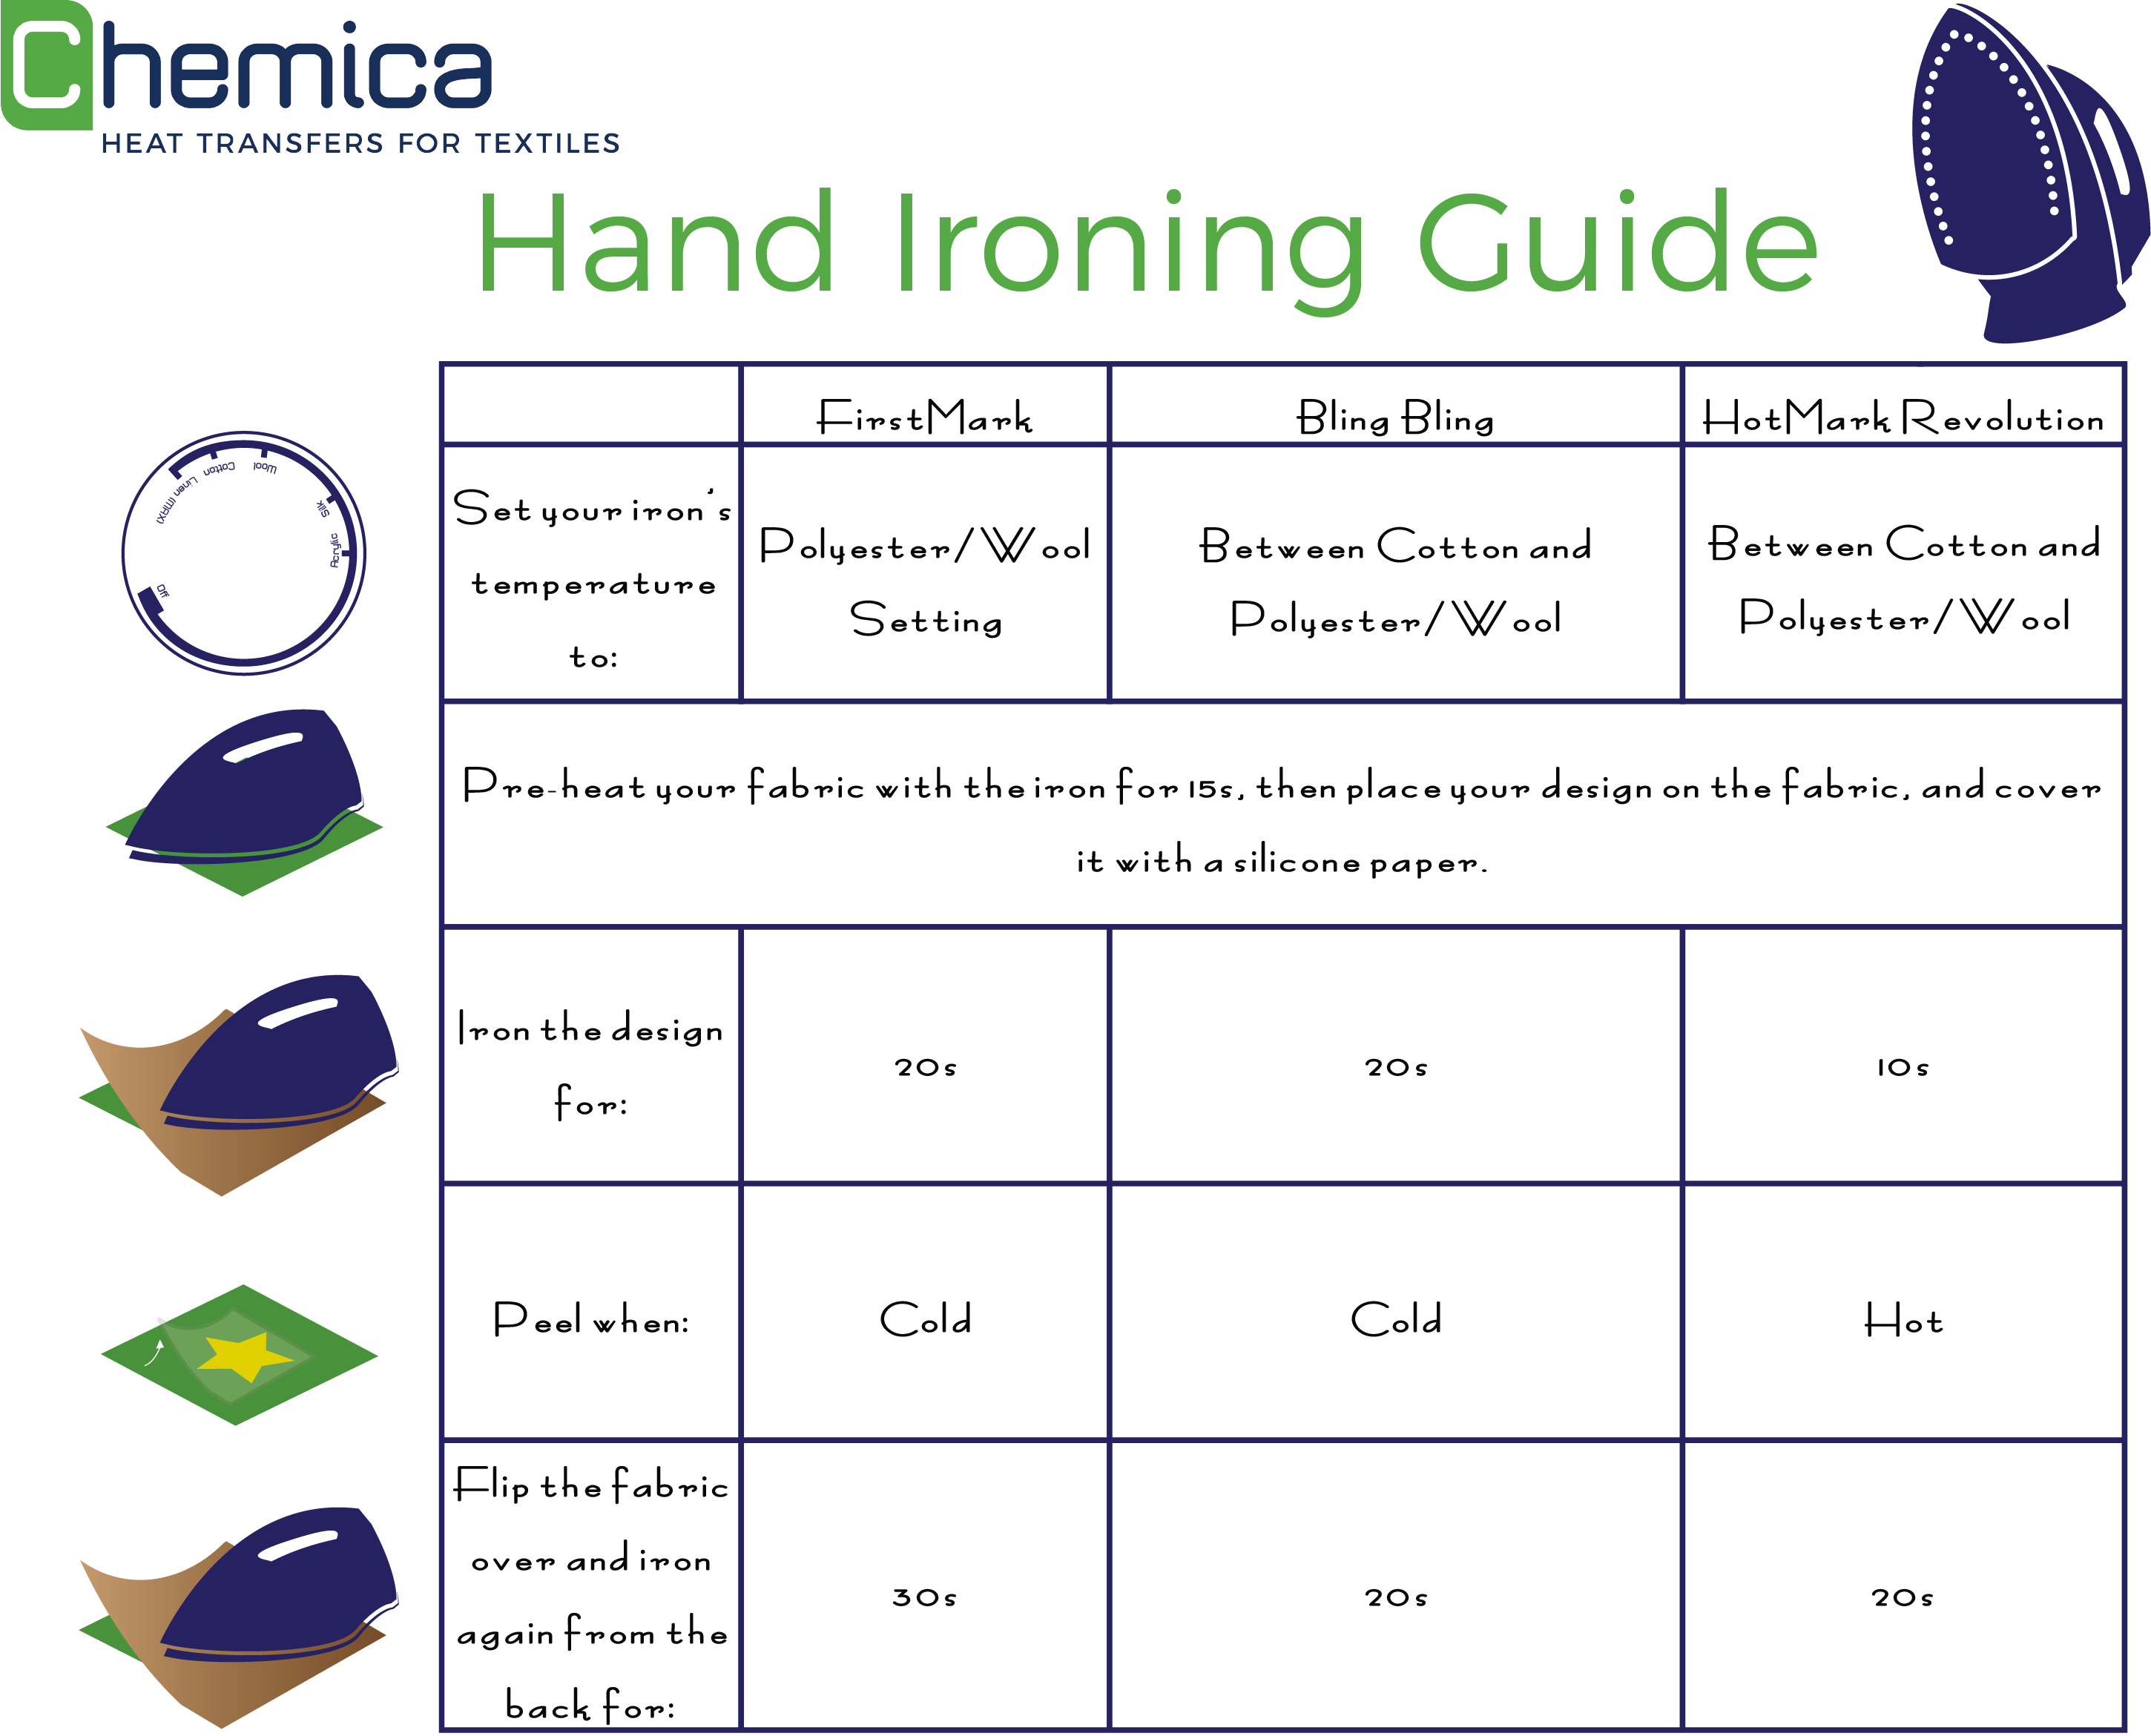 Chemica Hand Iron How-To